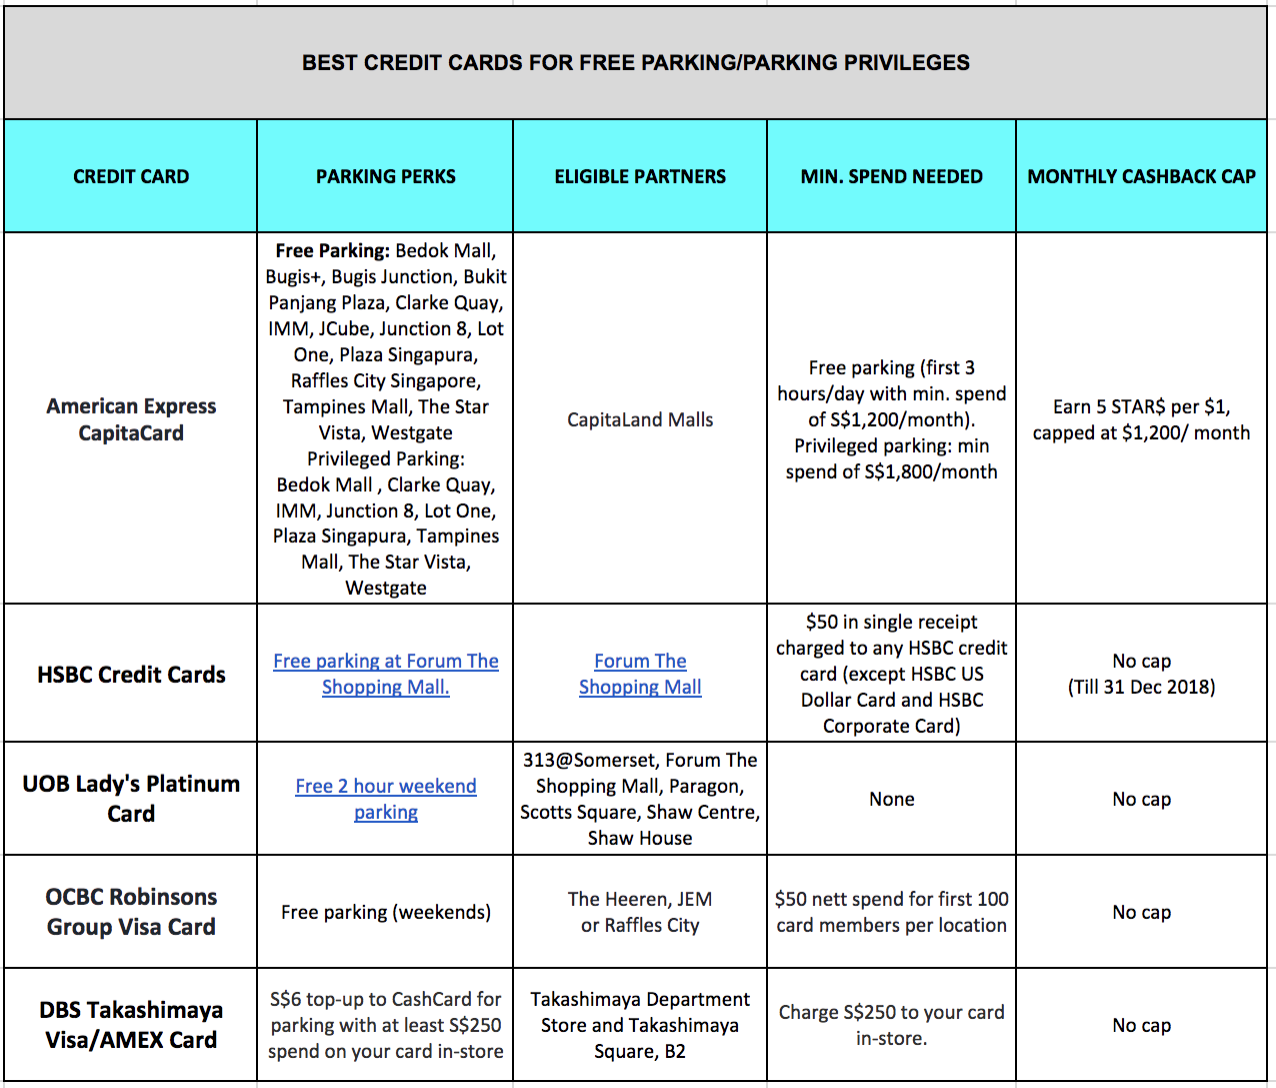 Comparison chart for best credit cards for free parking in Singapore.